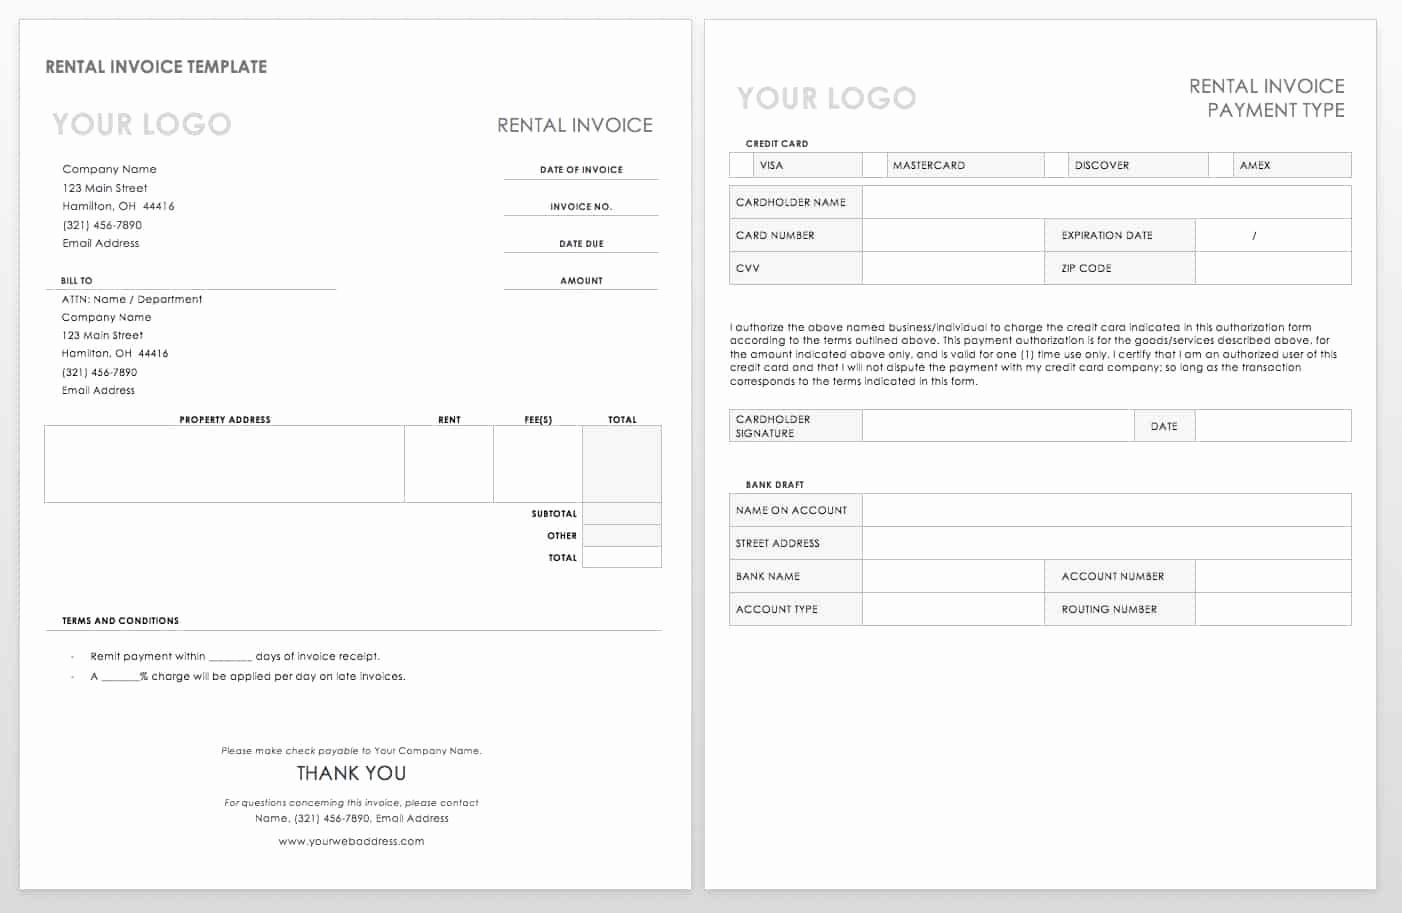 Rental Invoice Template Word Lovely 55 Free Invoice Templates